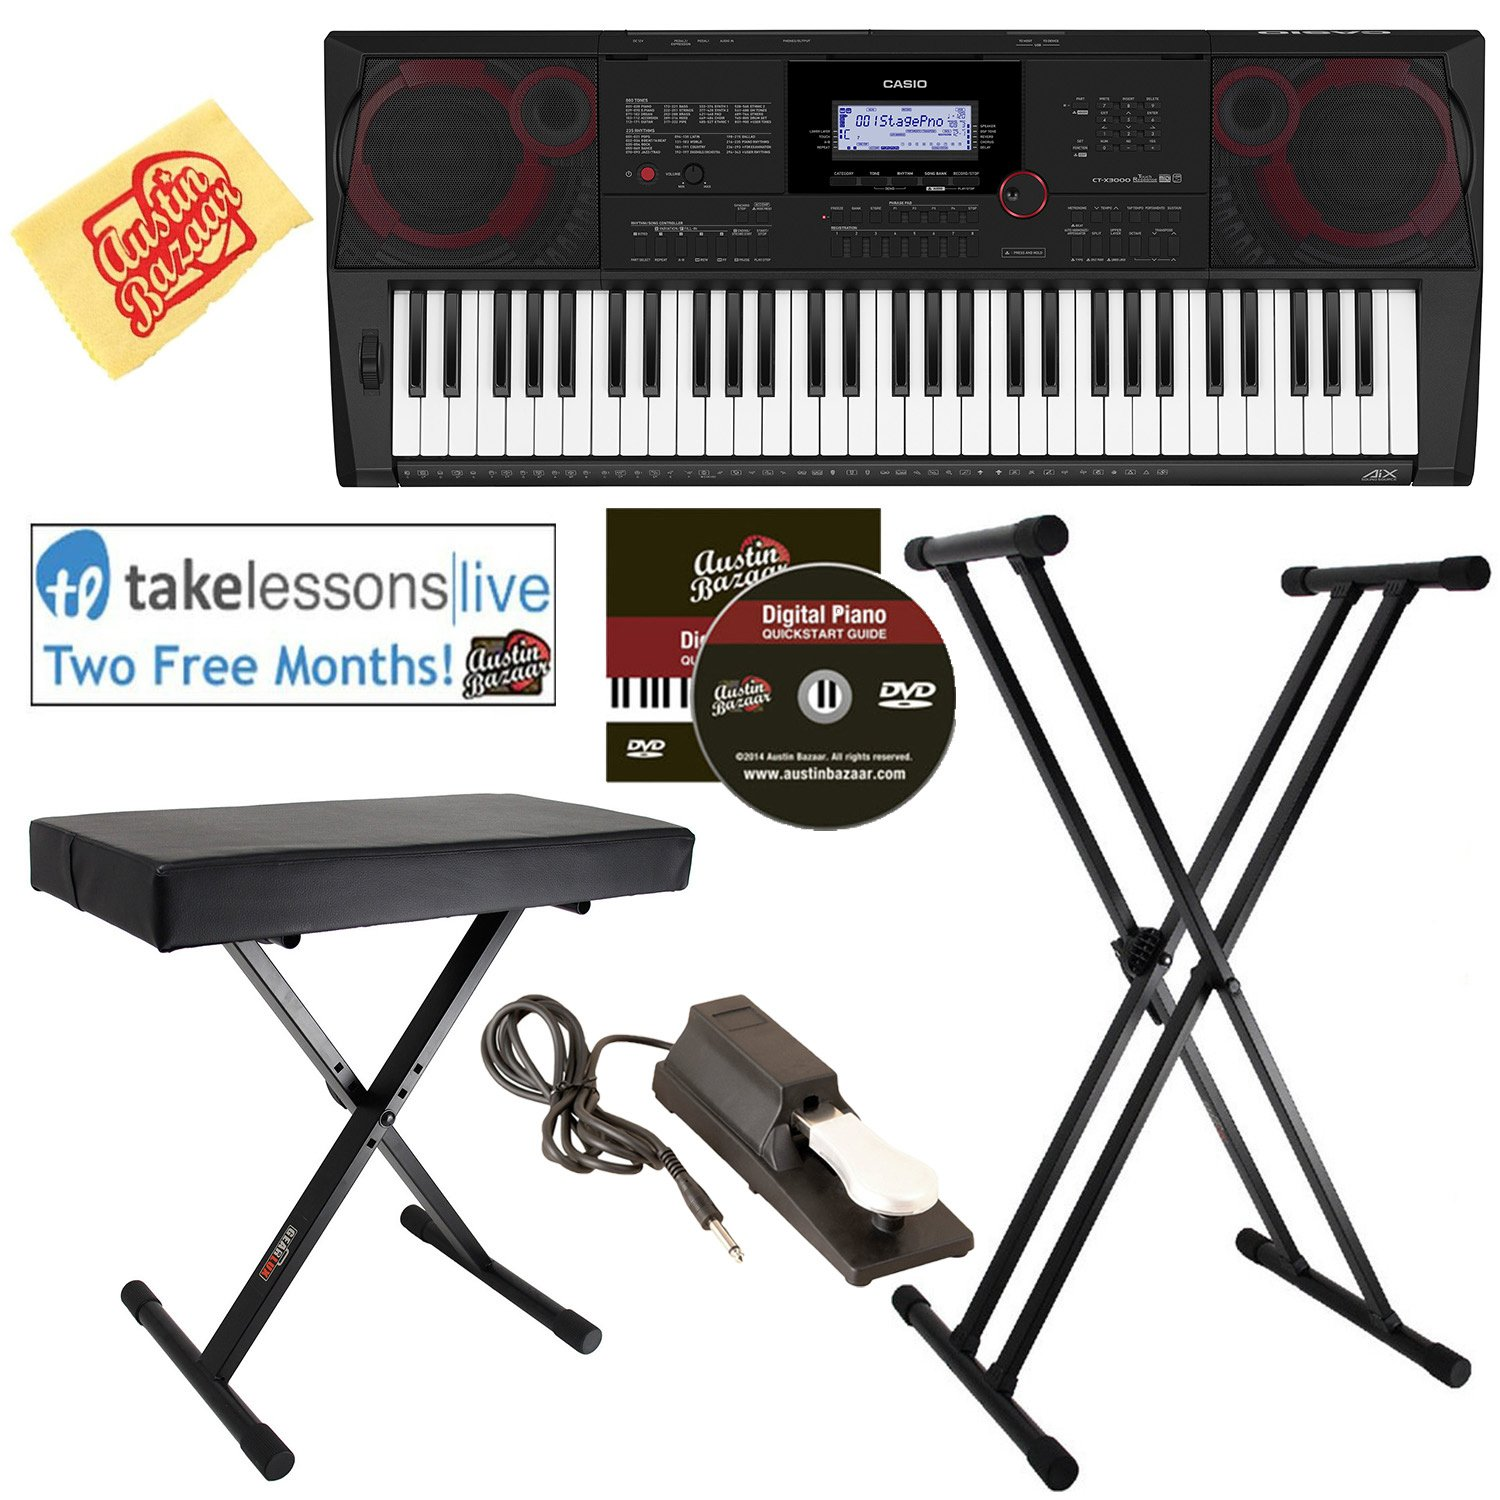 Casio CT-X3000 Keyboard Bundle with Adjustable Stand, Bench, Sustain Pedal, Online Lessons, Austin Bazaar Instructional DVD, and Polishing Cloth by Casio